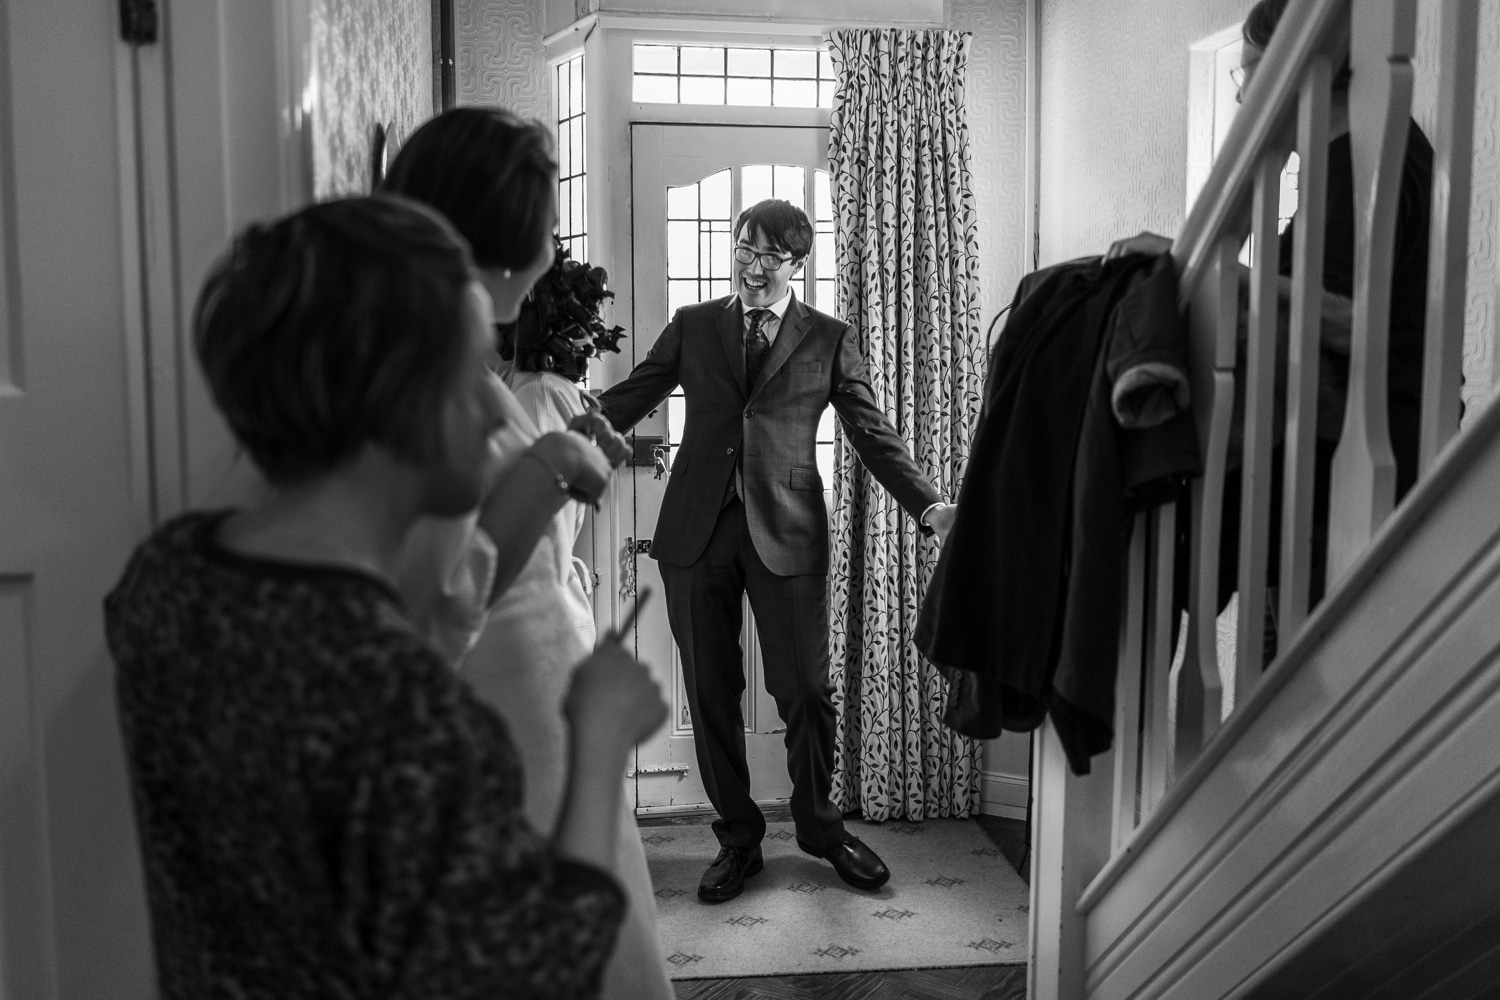 Best-man shows off suit to bridesmaids